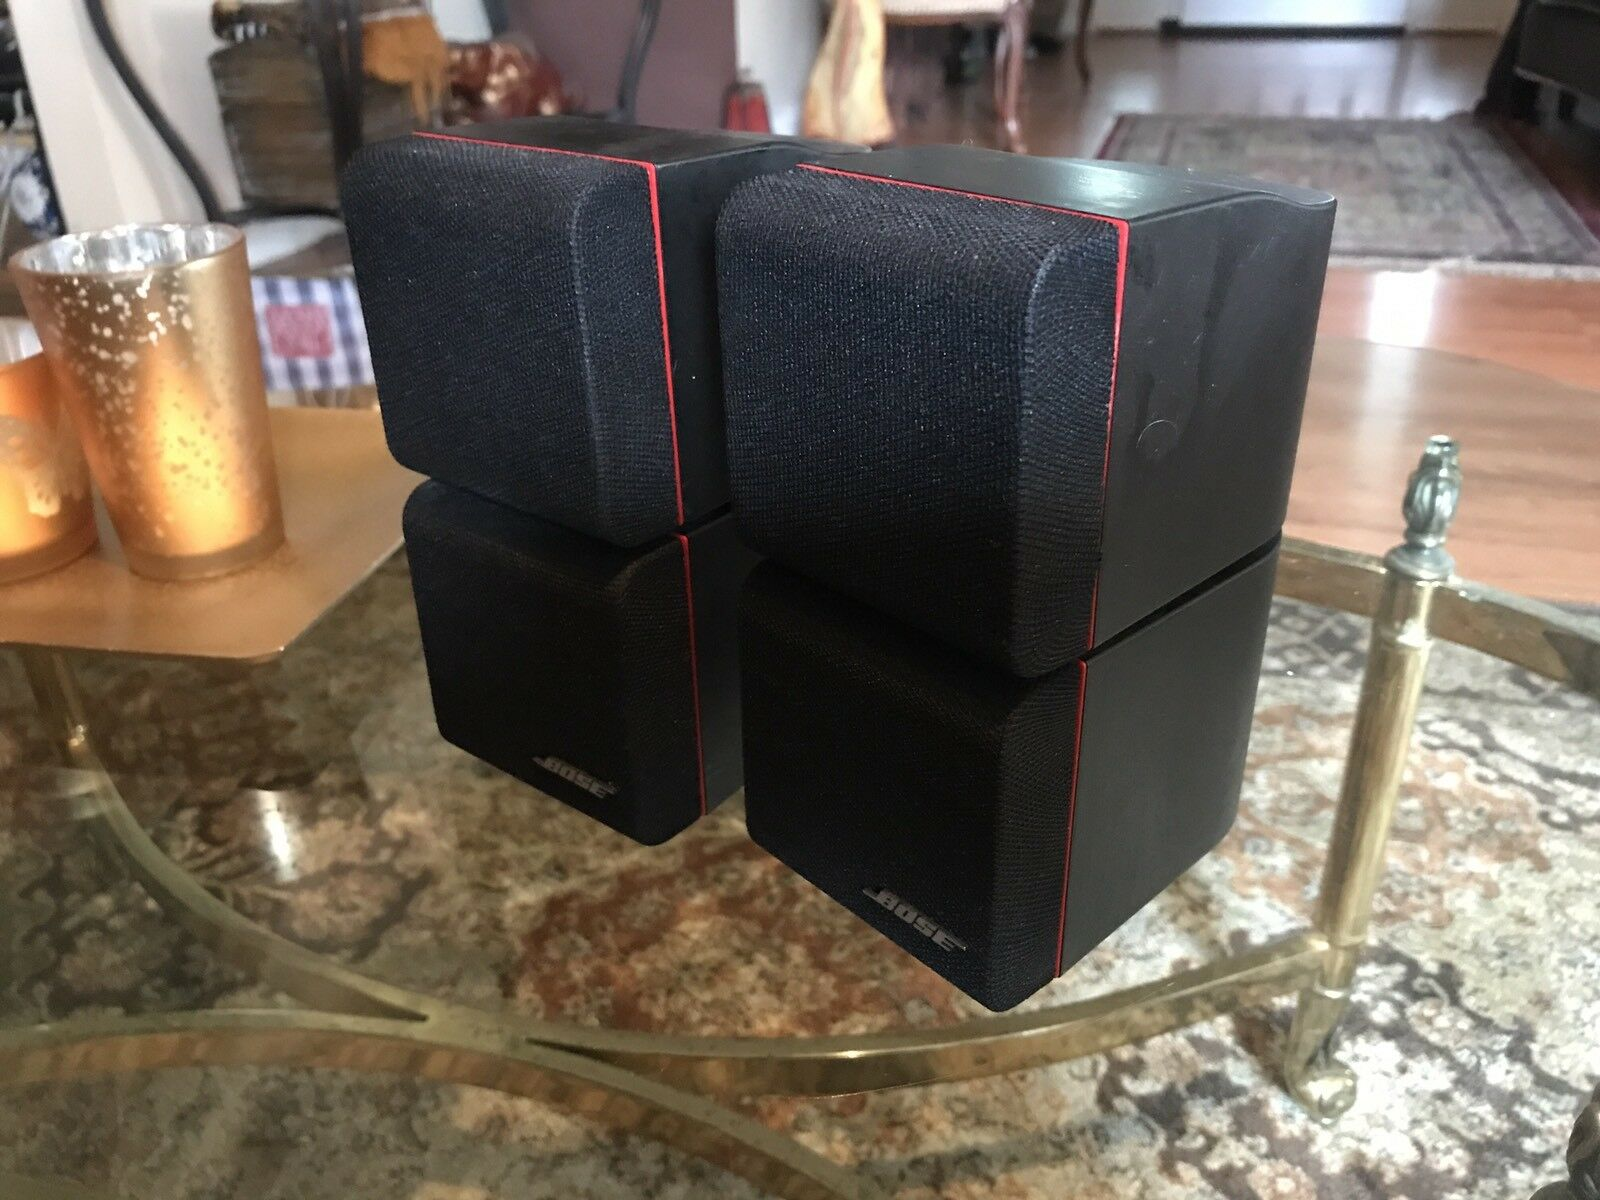 2 x Vintage Bose First Gen Double Cube Speaker Bose Sound Guaranteed Nice